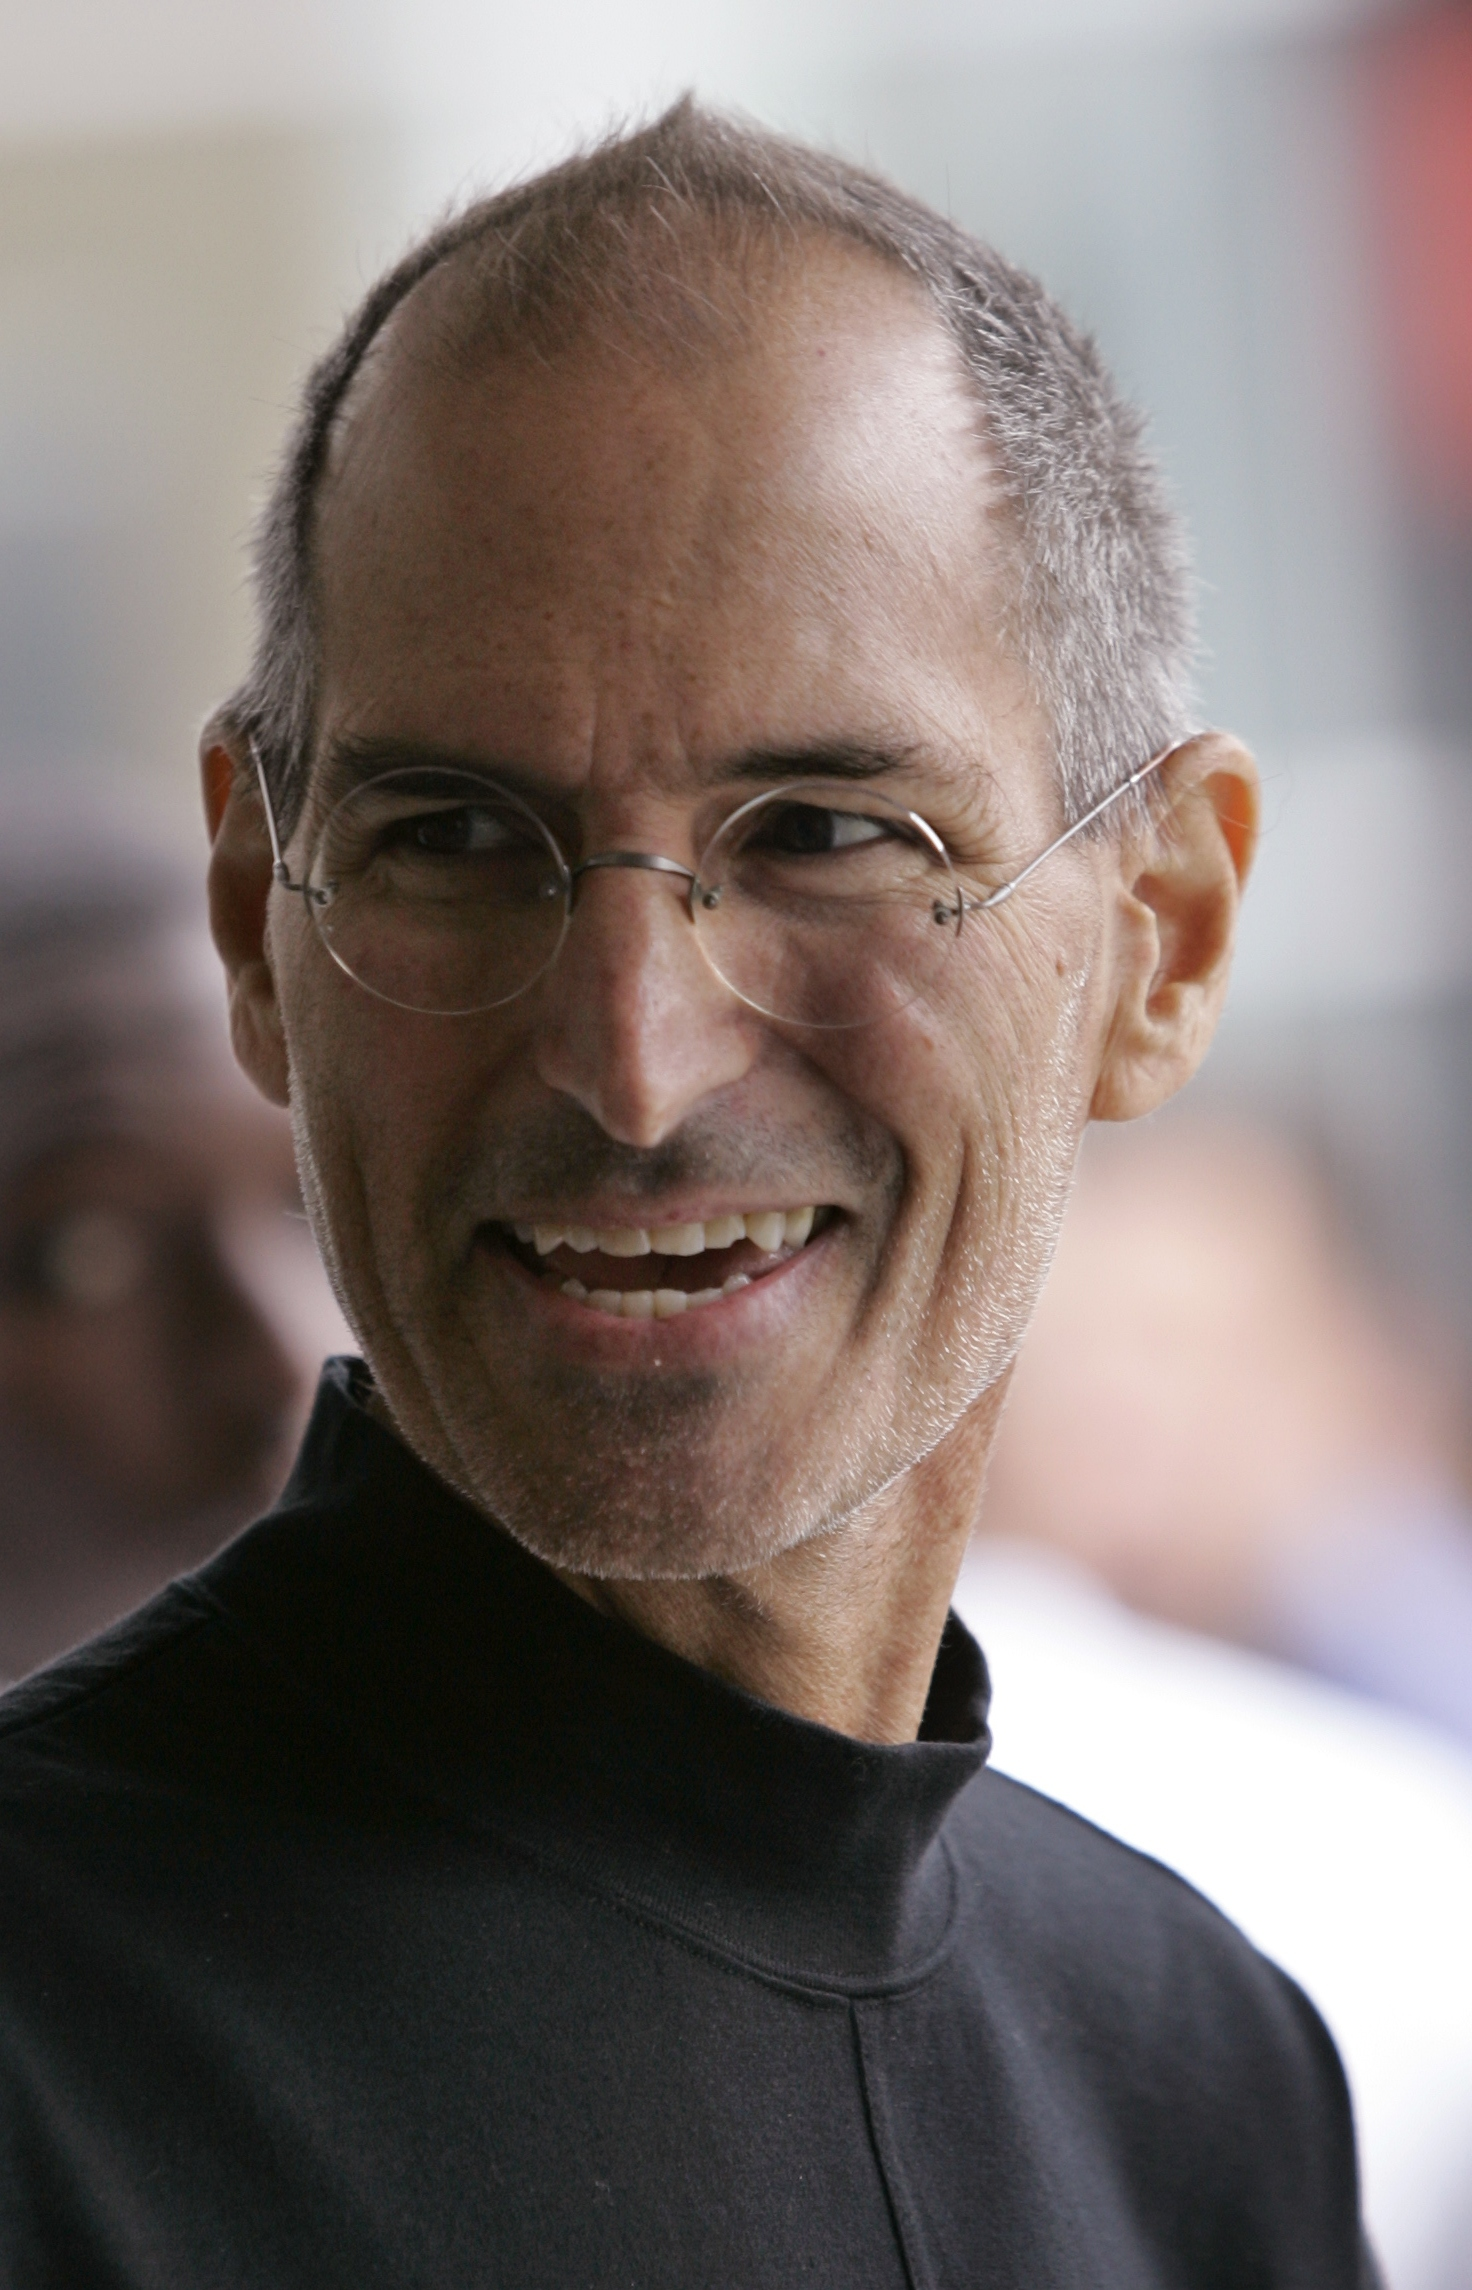 steve jobs Celebrity HD Wallpaper